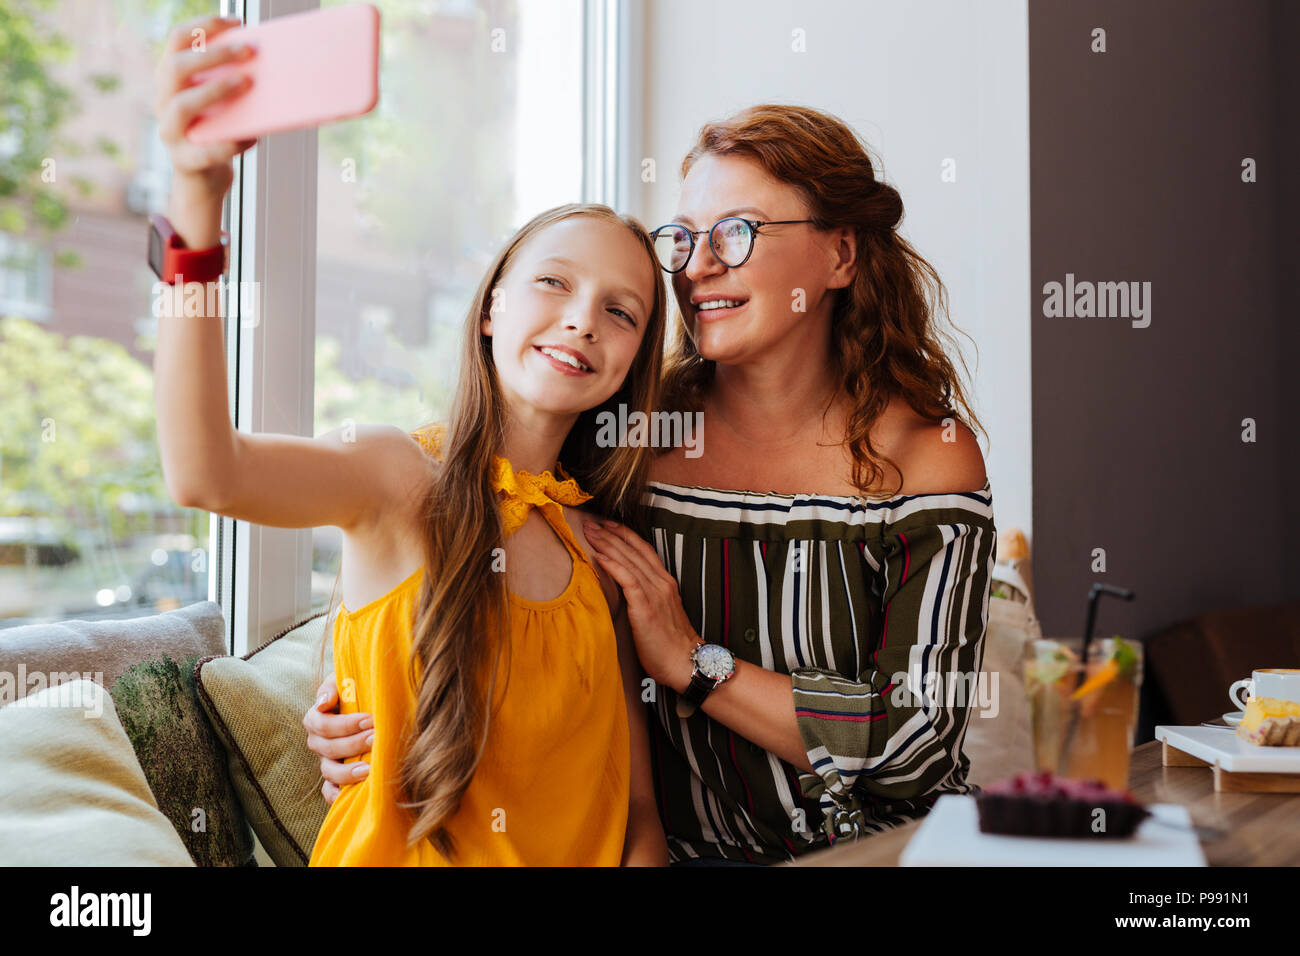 Modern teenage girl making selfie with mother - Stock Image